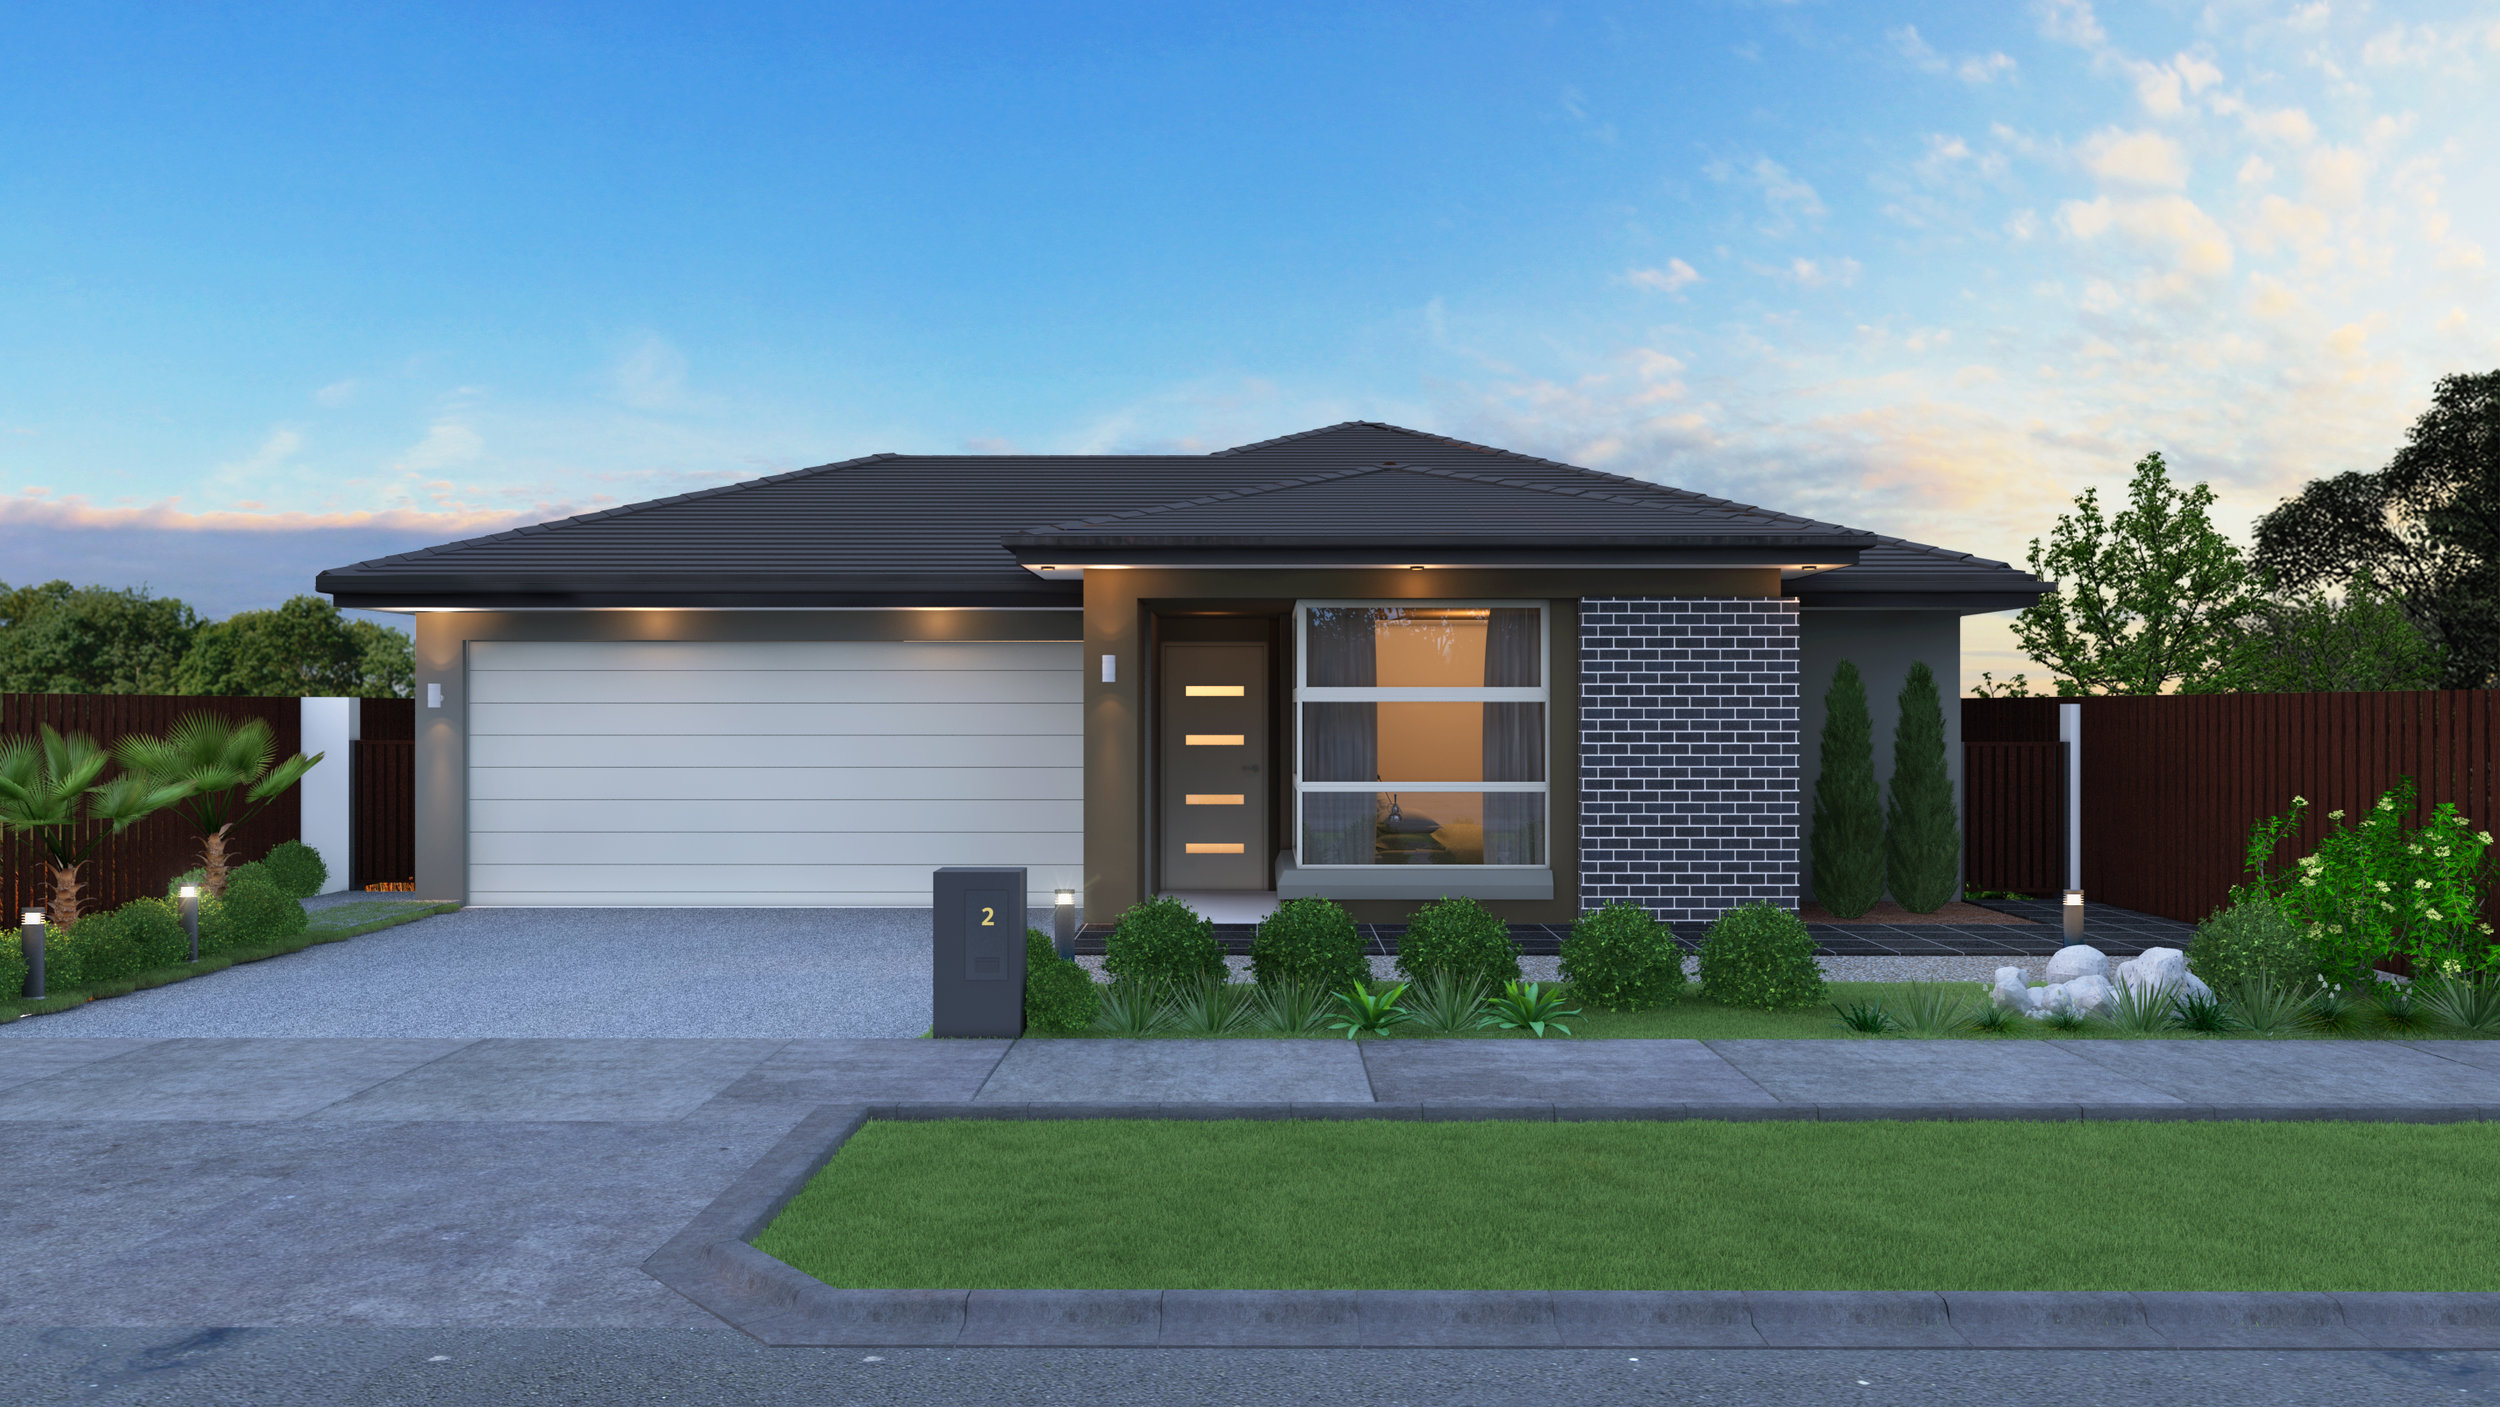 The Casuarina - 3 Bed | 2 Bath | 2 Car Garage15m Traditional Lots